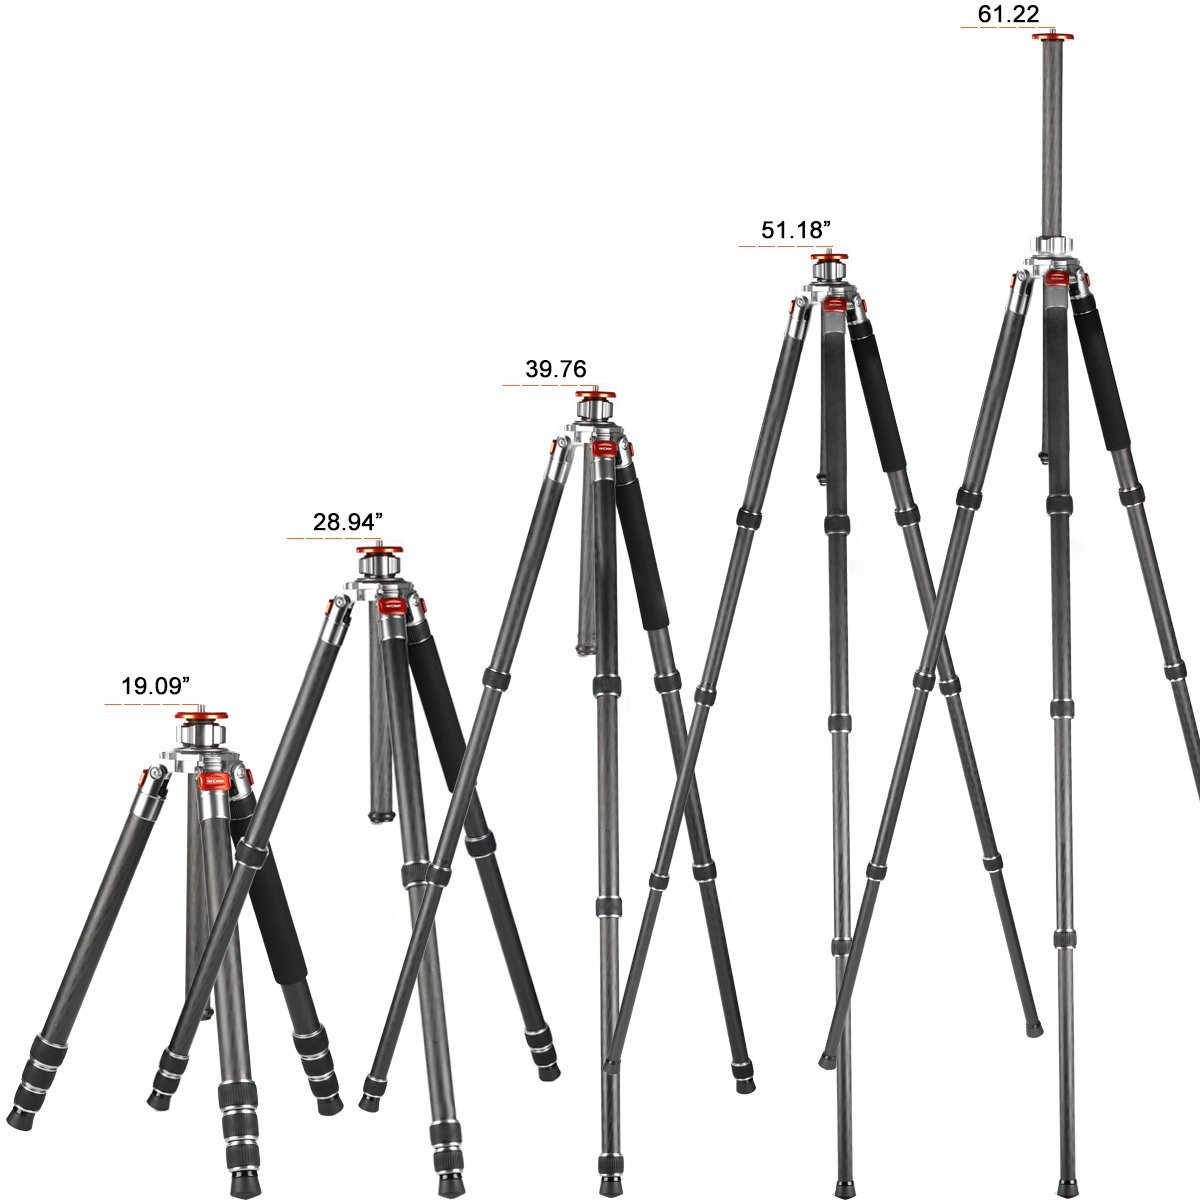 K&f Concept Carbon Fiber Camera Tripod 4 Section 61 Inch with Load Capacity 26.46lbs Monopod for Camera DSLR DV Canon Nikon Sony by K&F Concept (Image #8)